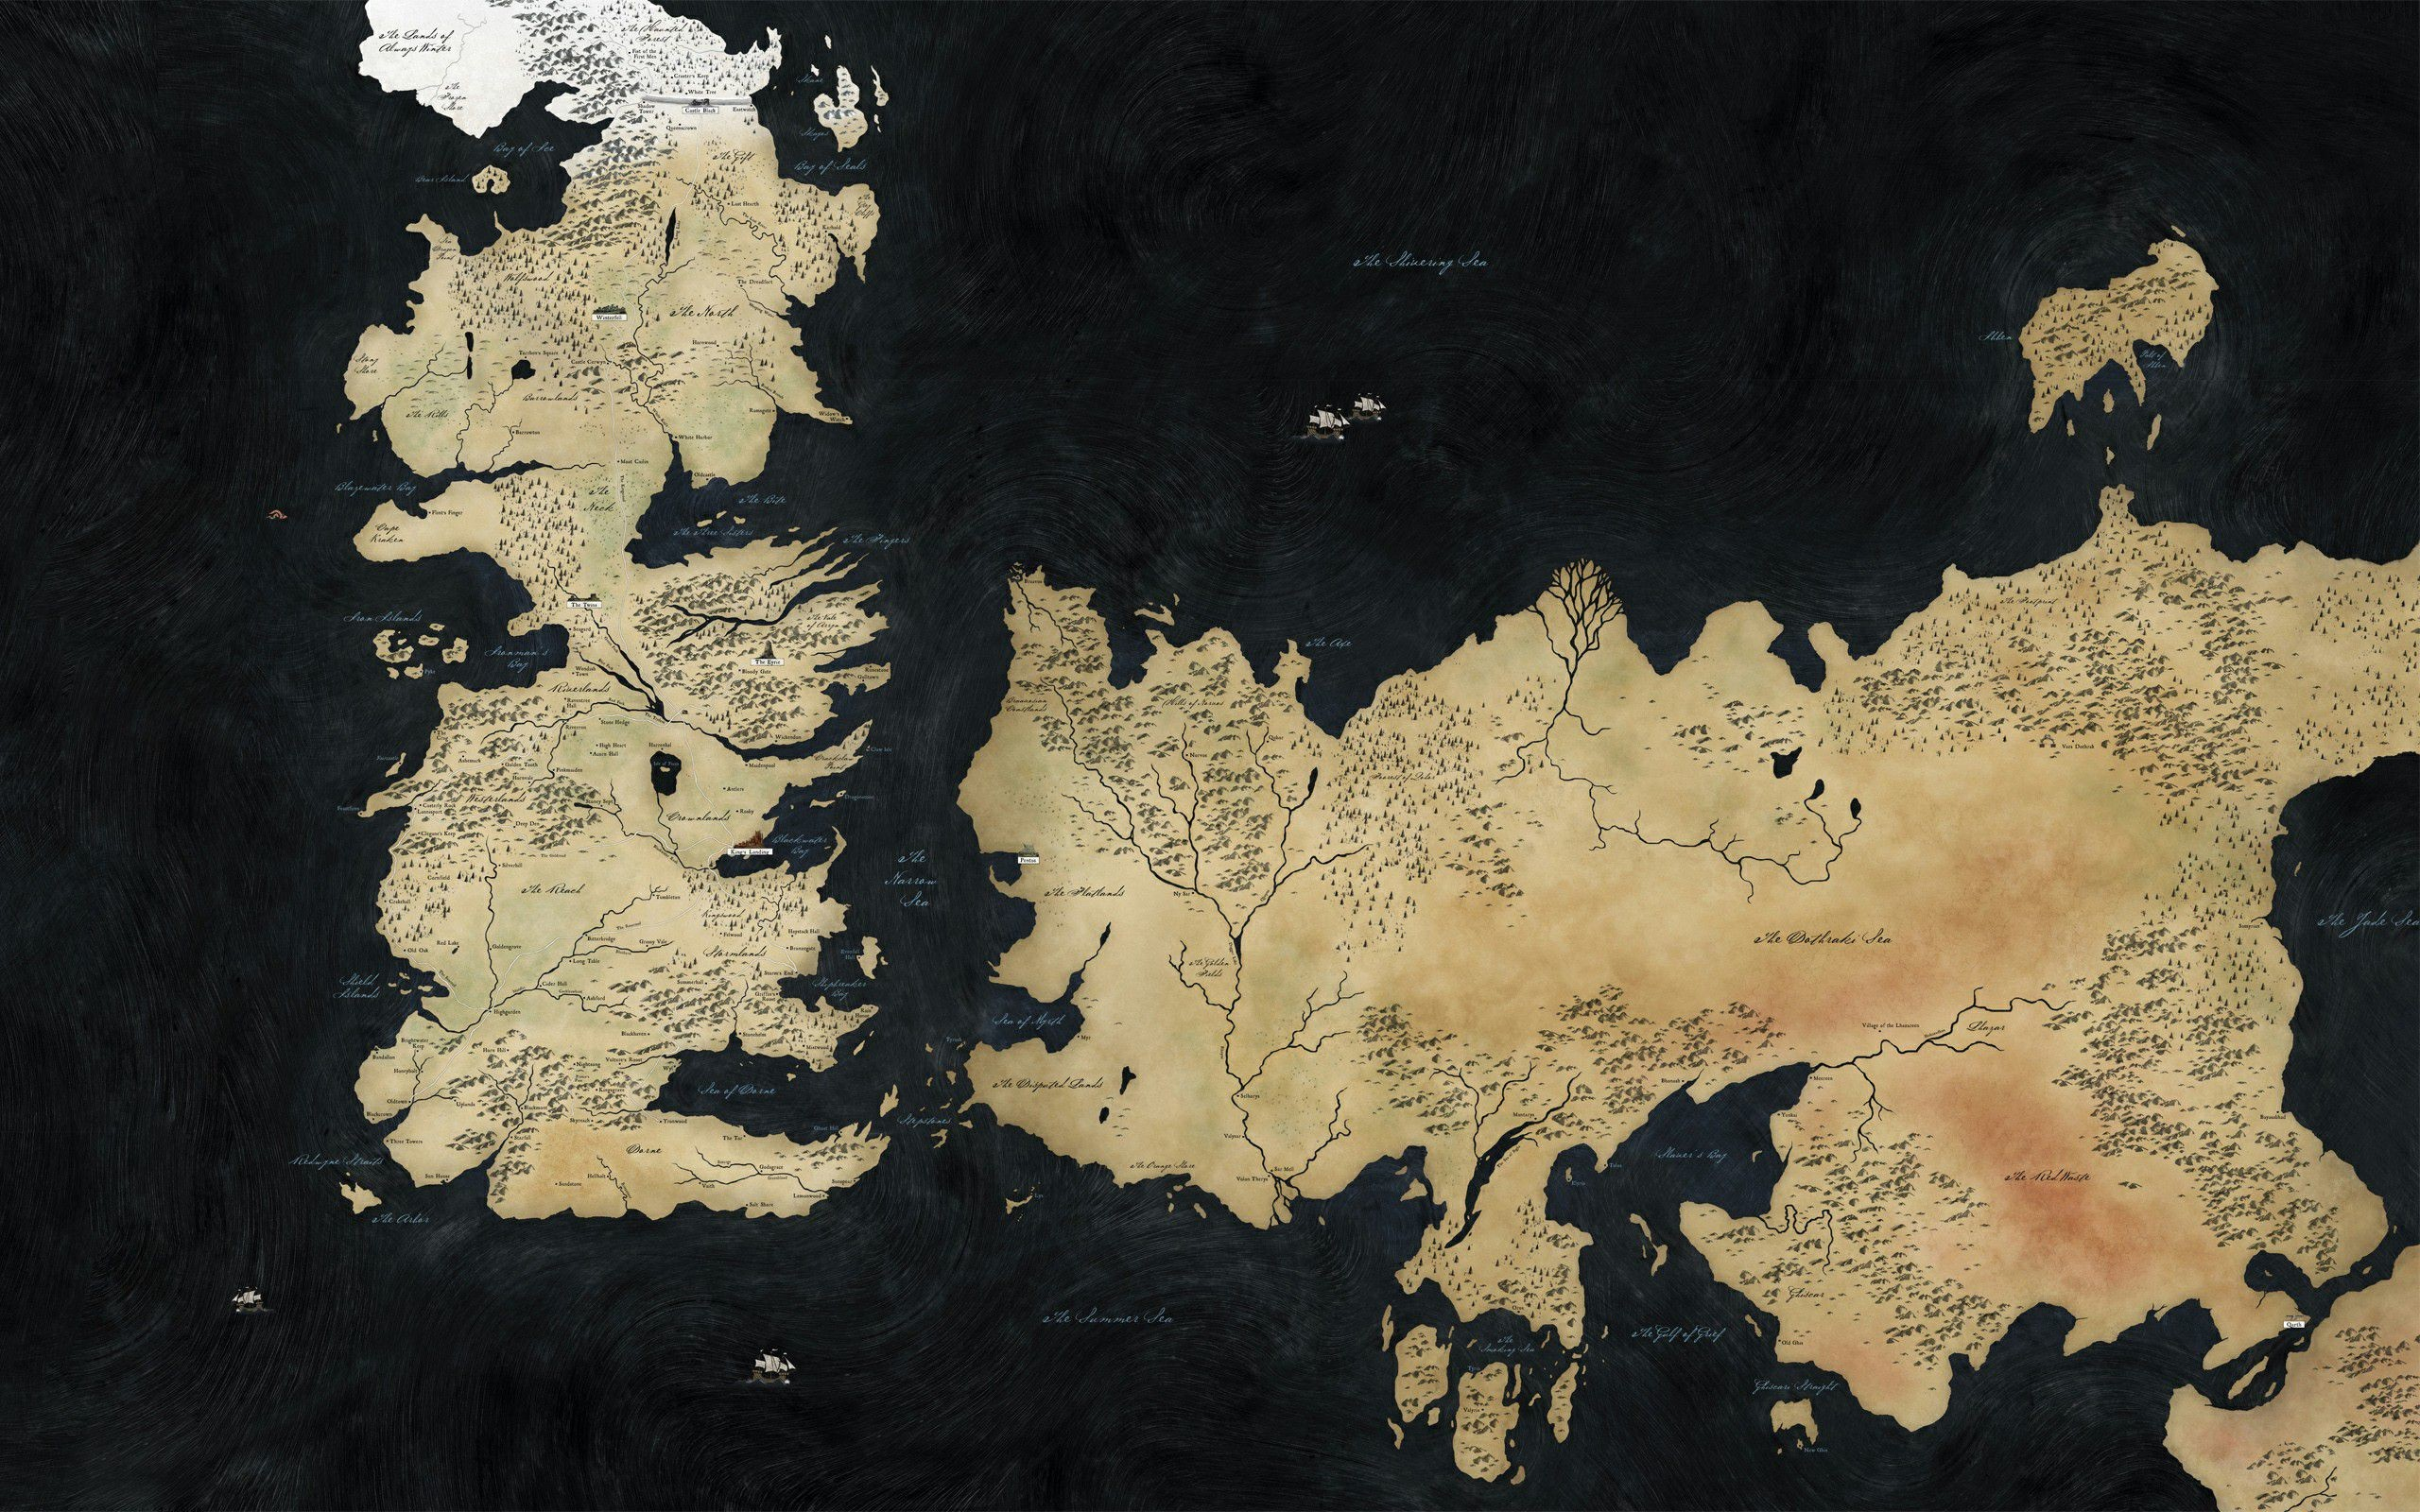 Game of thrones map wallpaper 56 images game of thrones map wallpaper gumiabroncs Choice Image